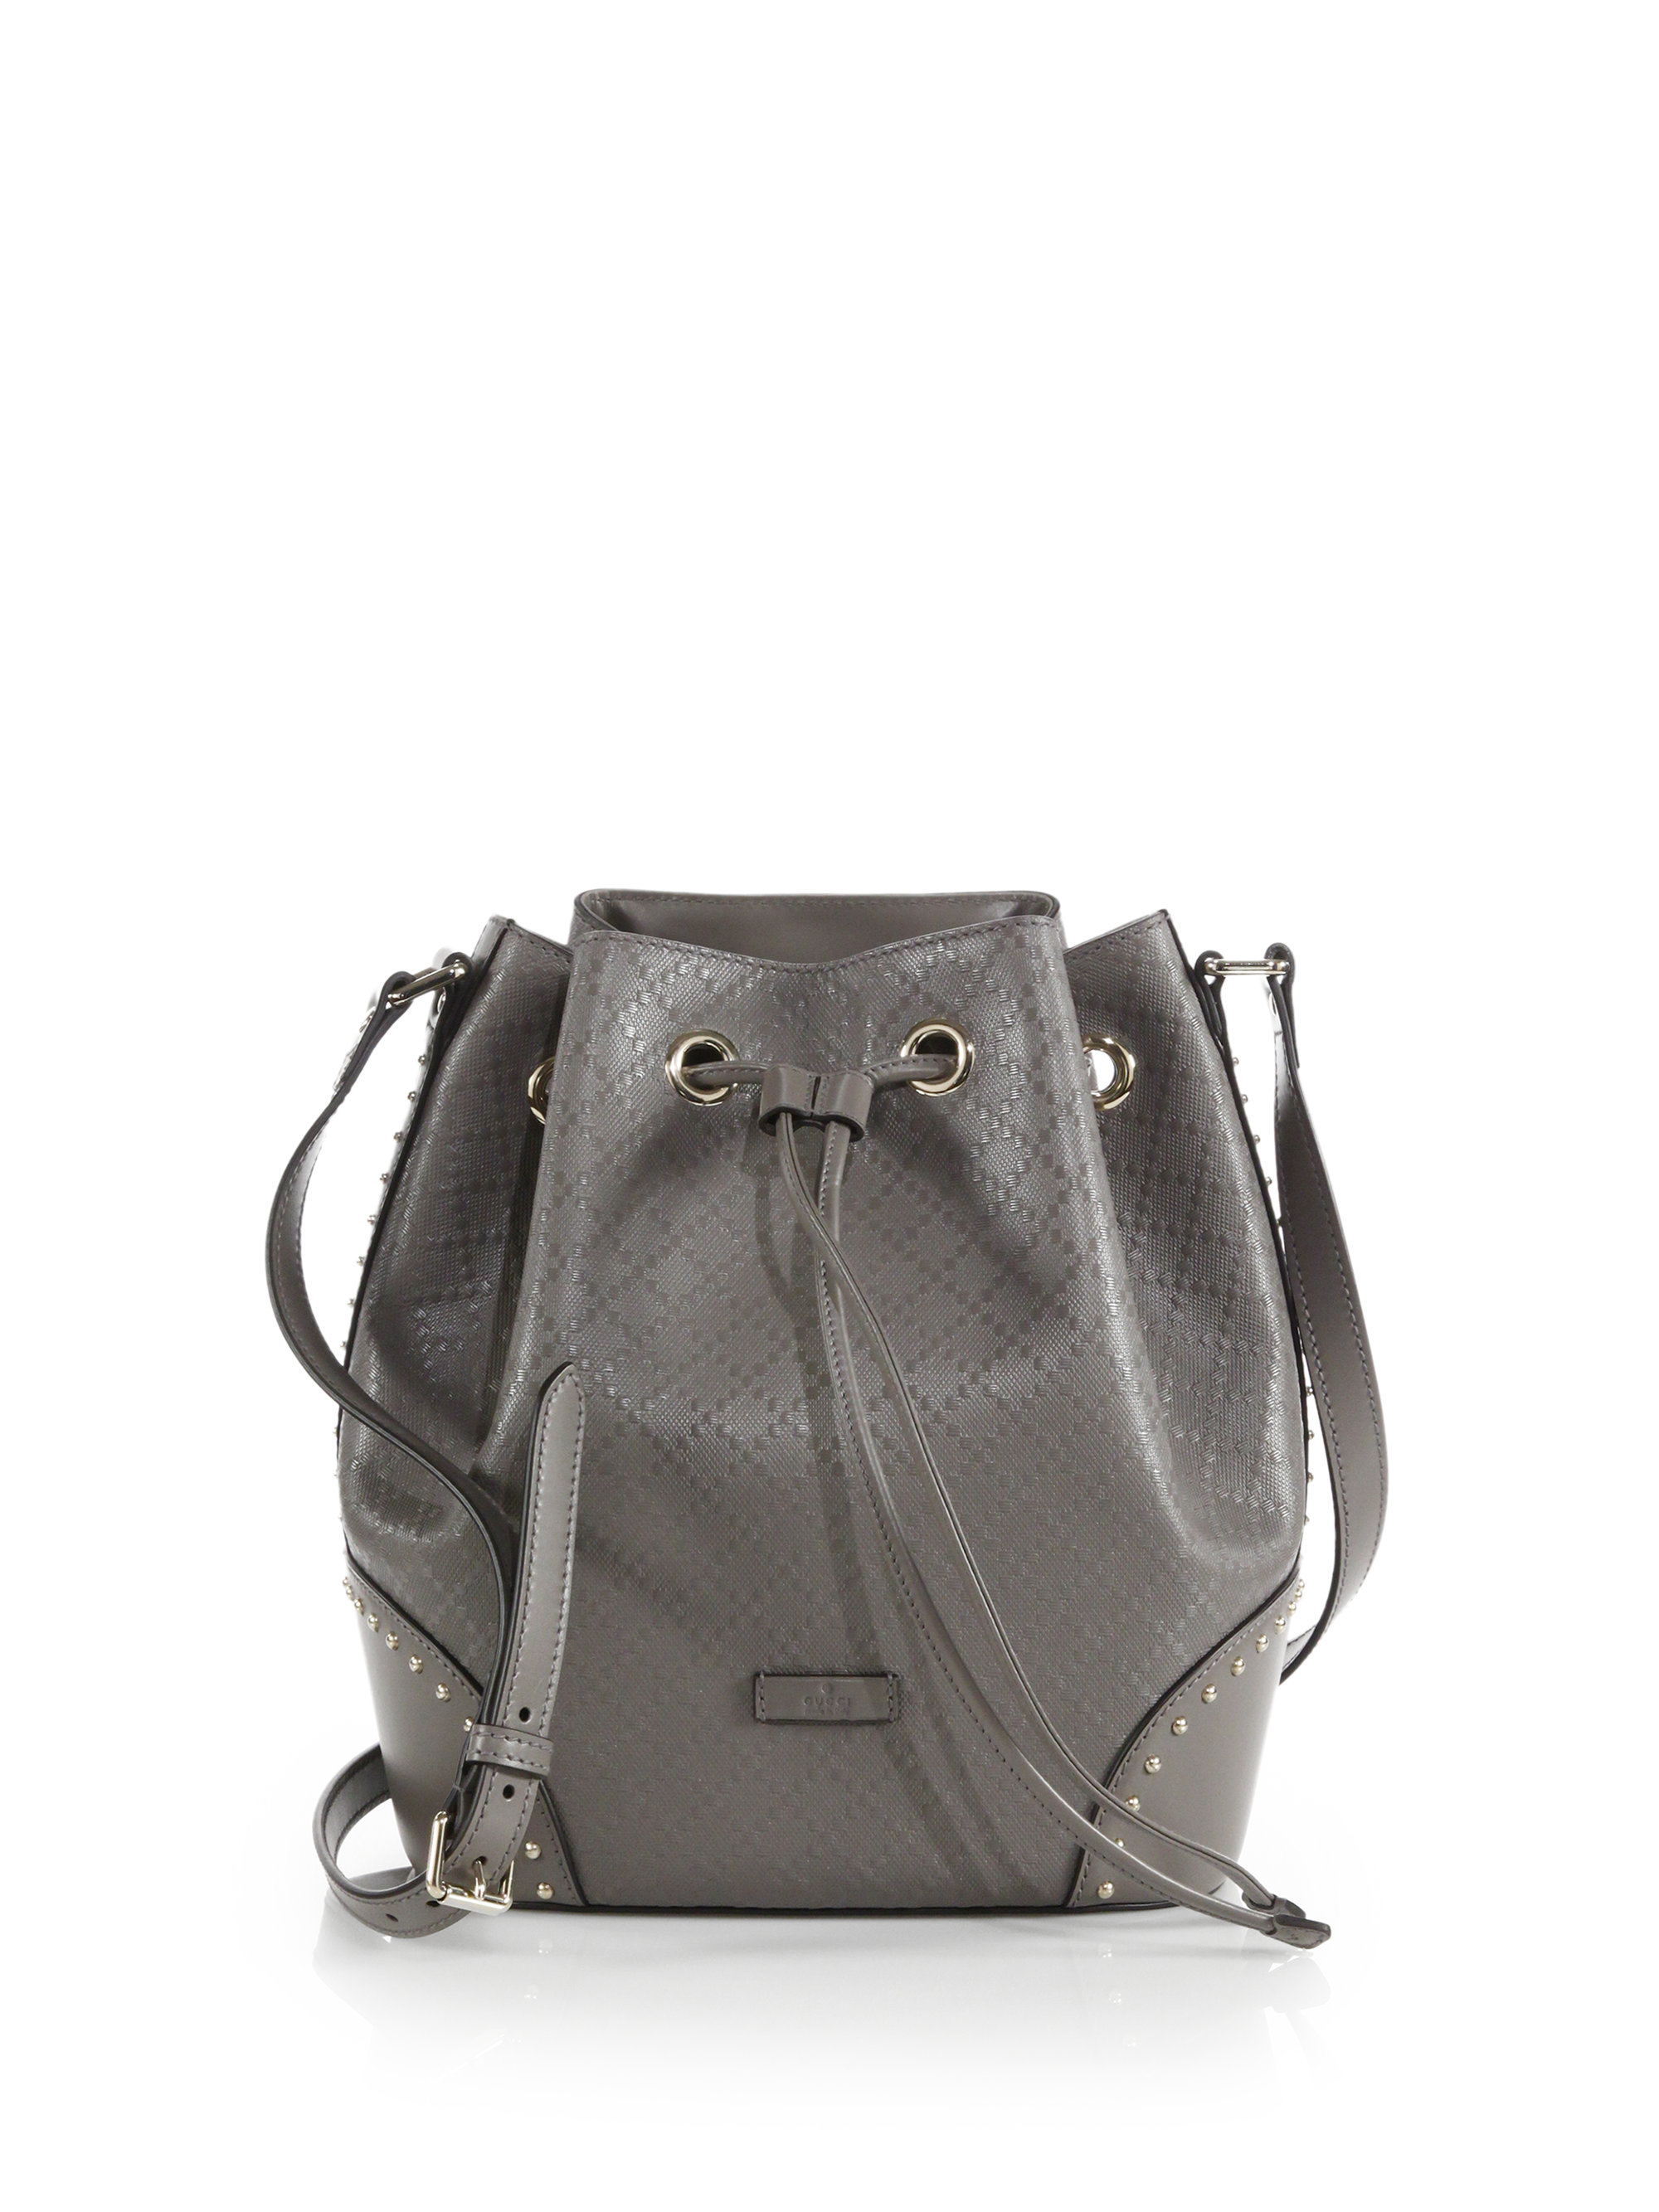 73c774bee19ff0 Gucci Bright Diamante Leather Bucket Bag in Natural - Lyst